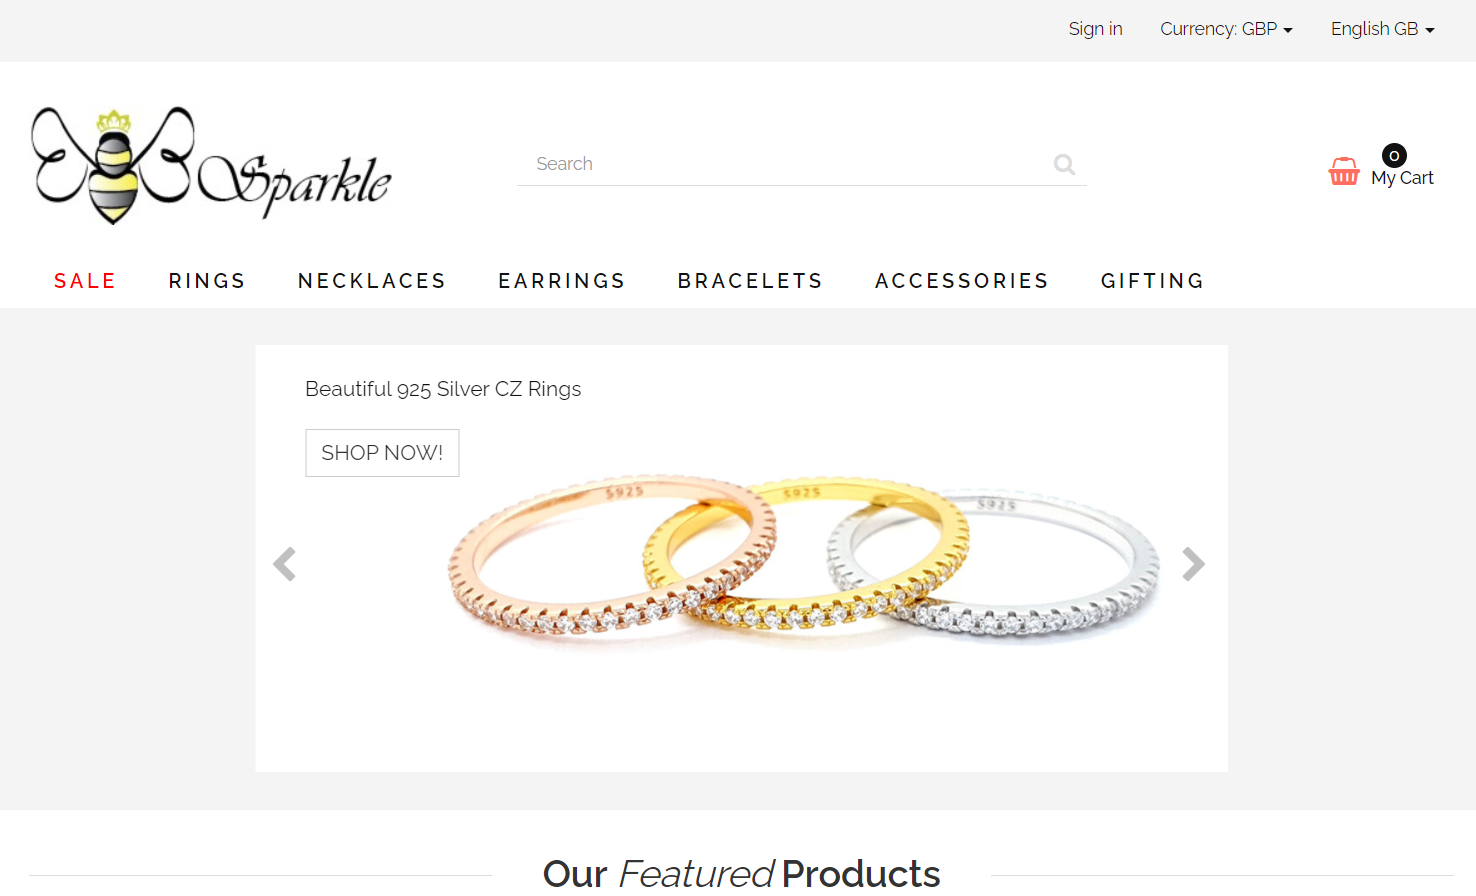 bsparkle.co.uk